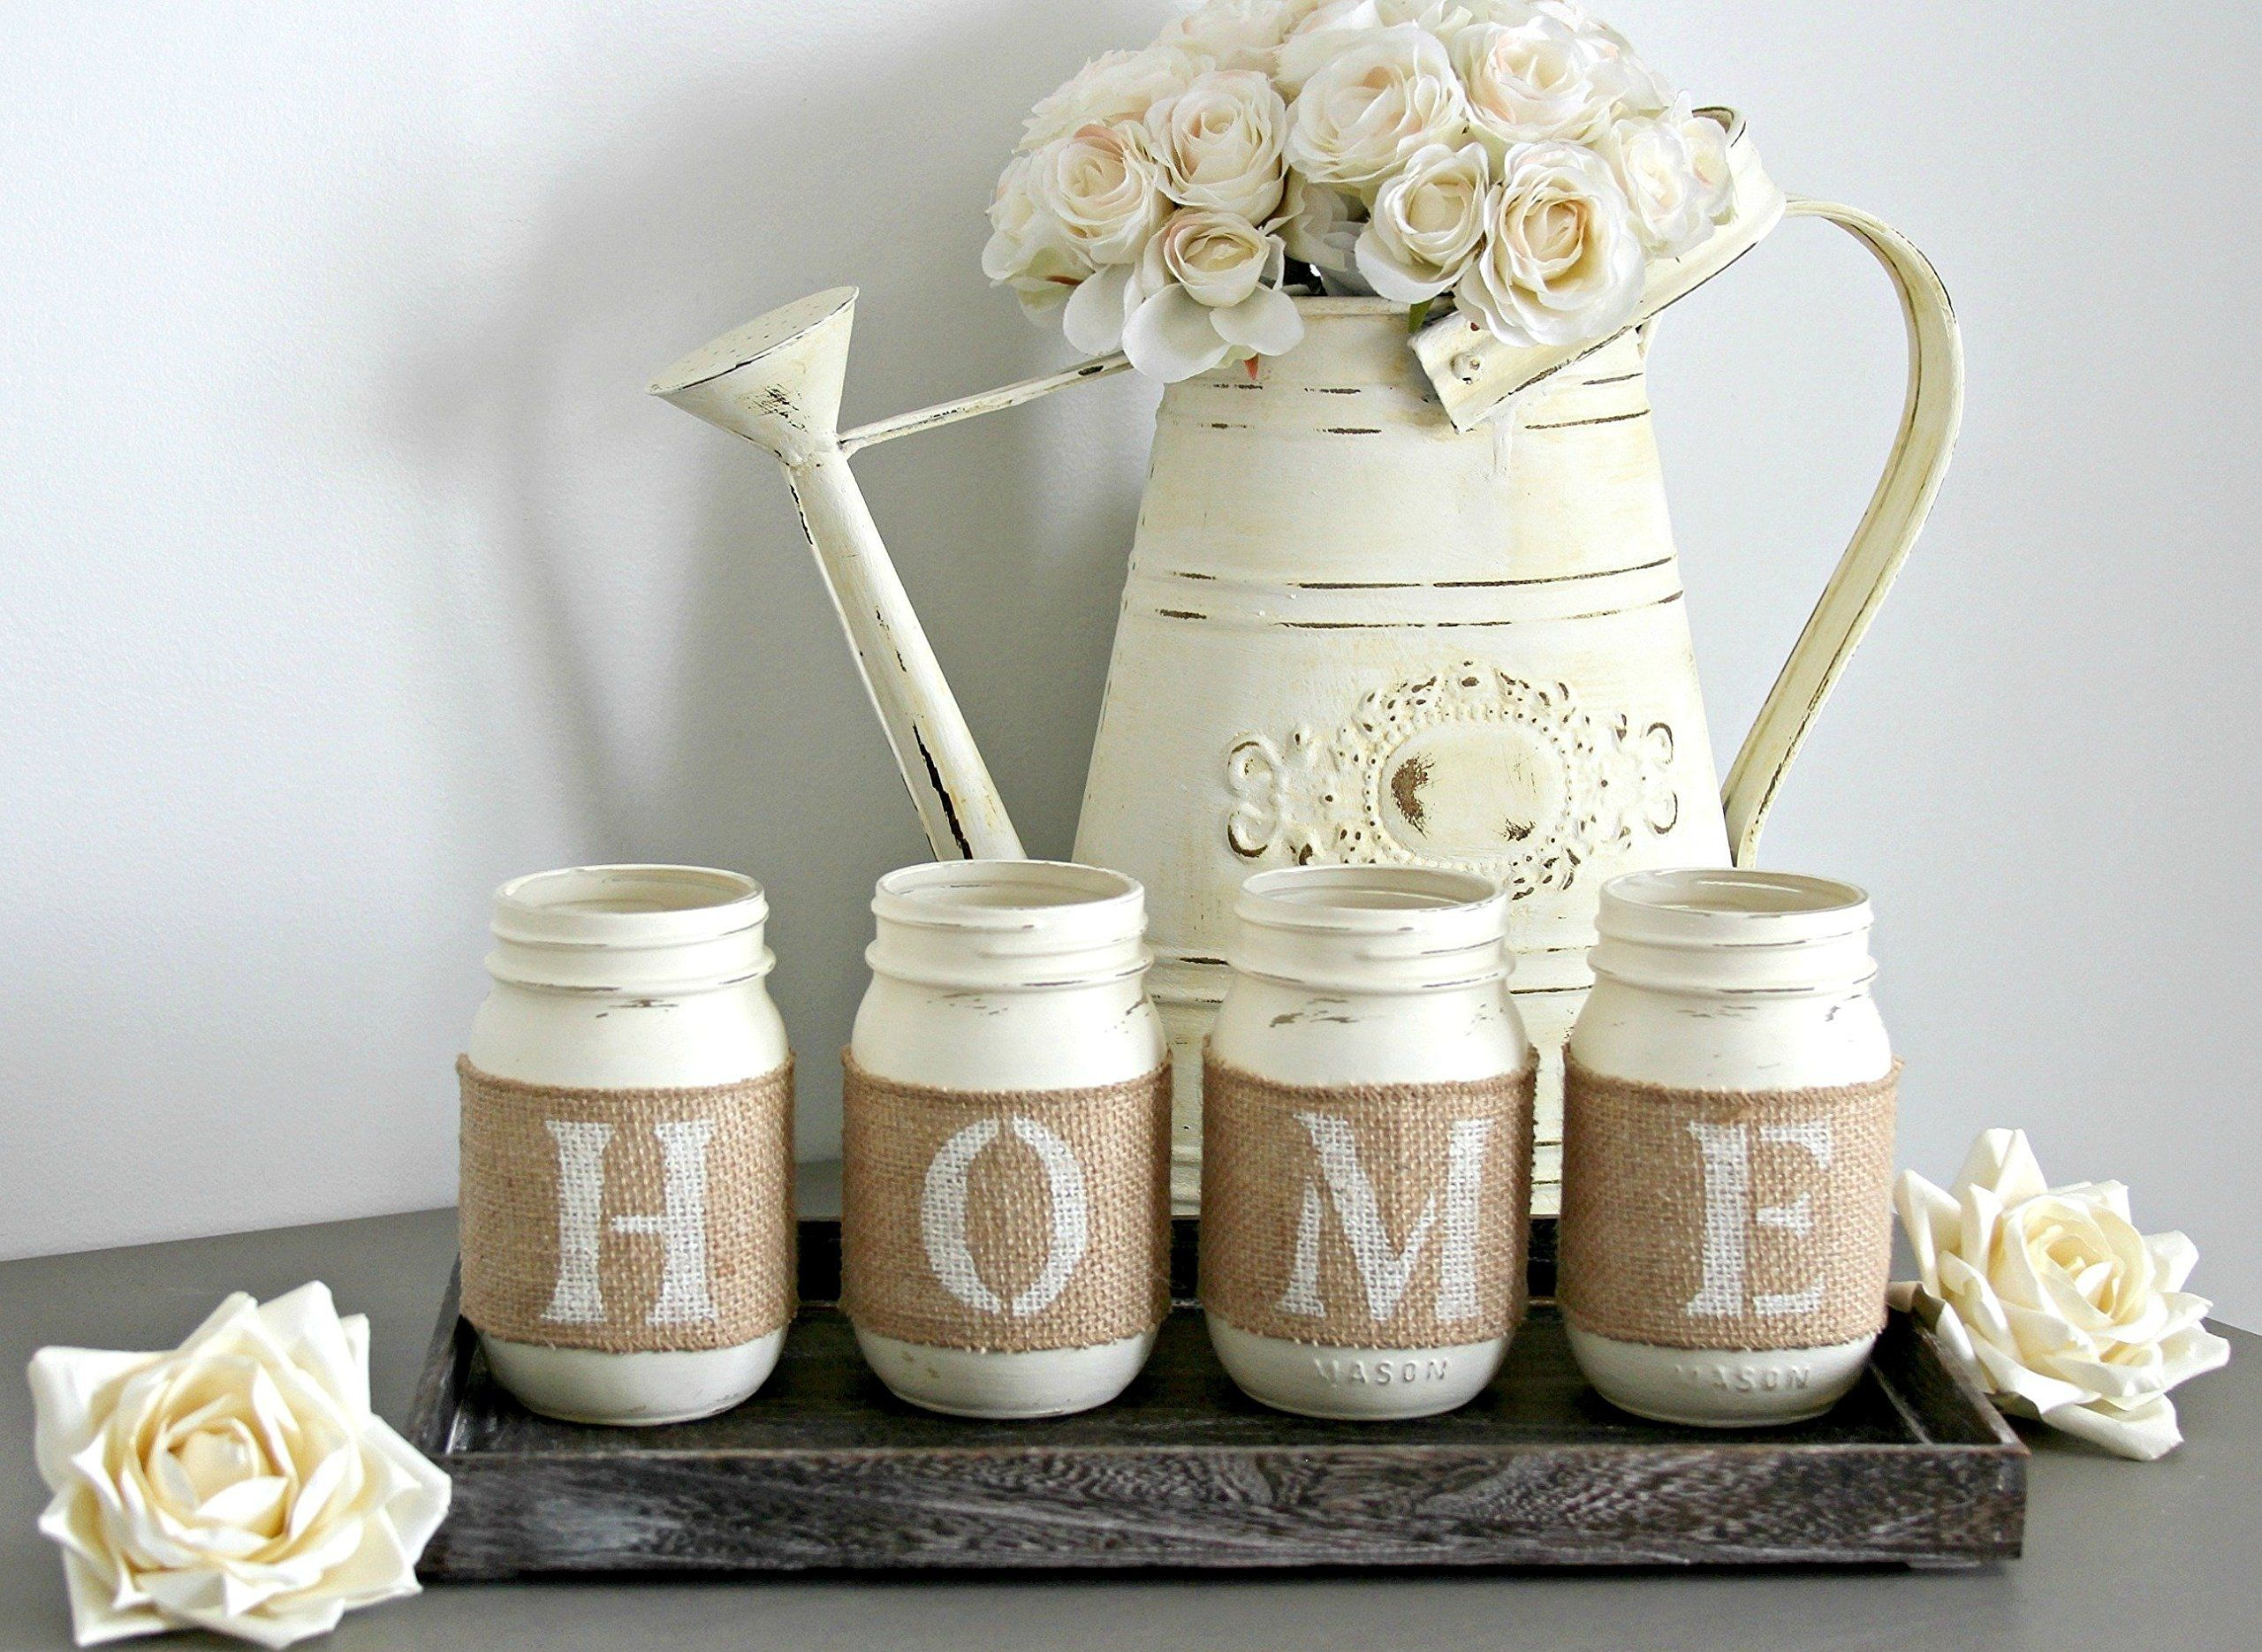 Decorative Jars Rustic Decorative Jars With Wooden Tray As A Housewarming Gift